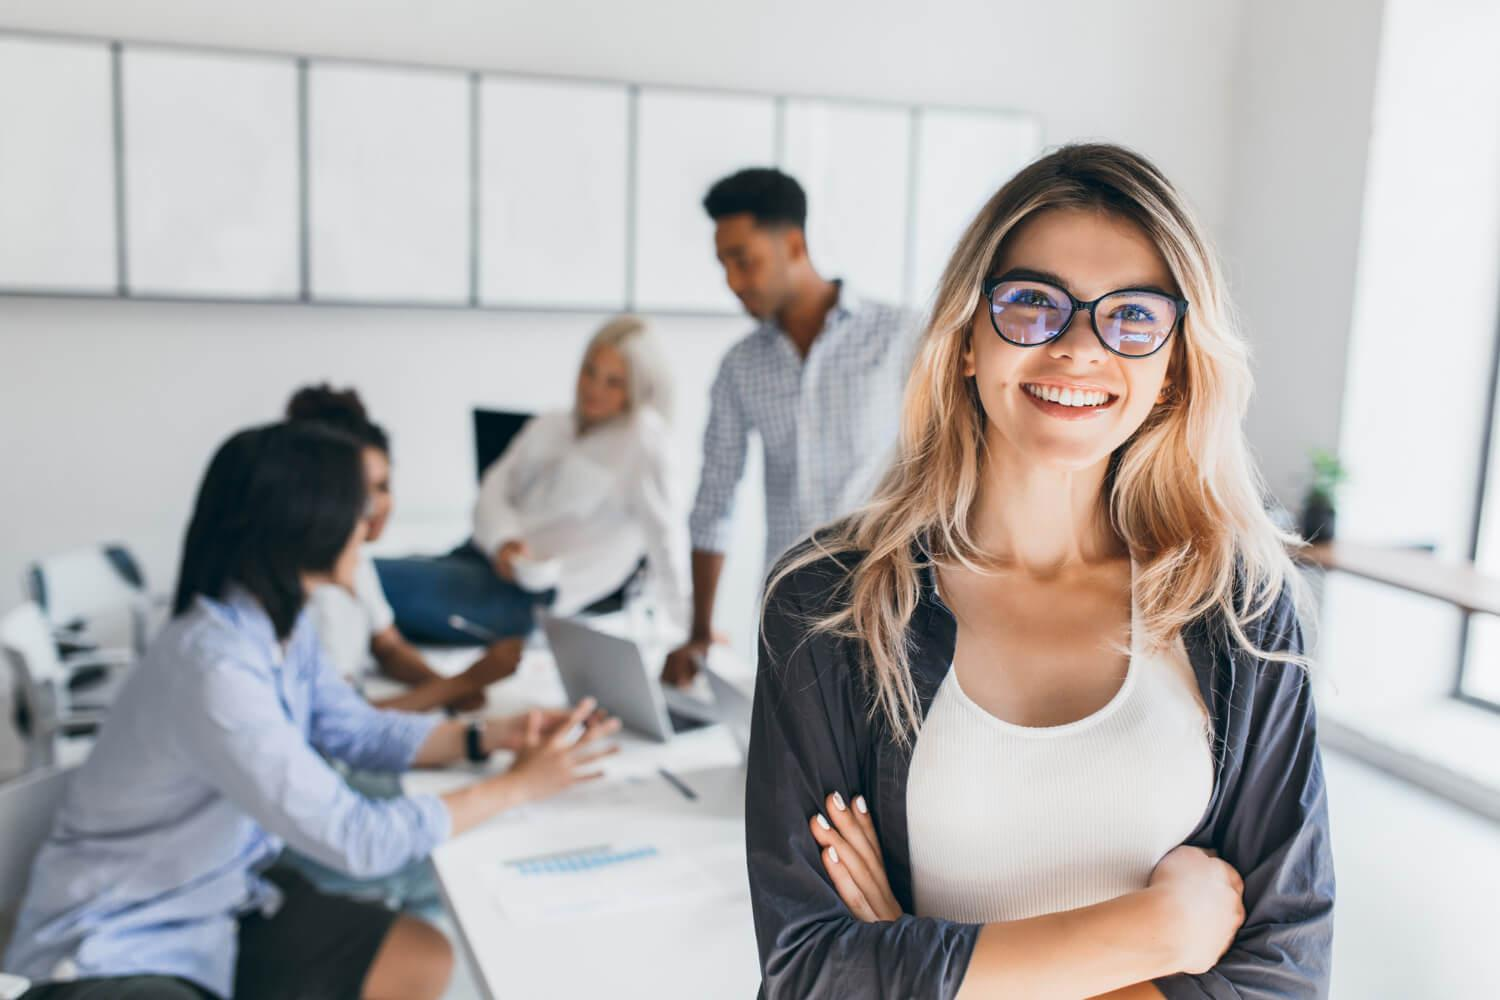 blonde-female-executive-posing-with-smile-arms-crossed-during-brainstorm-with-managers-indoor-portrait-european-student-spending-time-hall-with-asian-african-friends (1).jpg